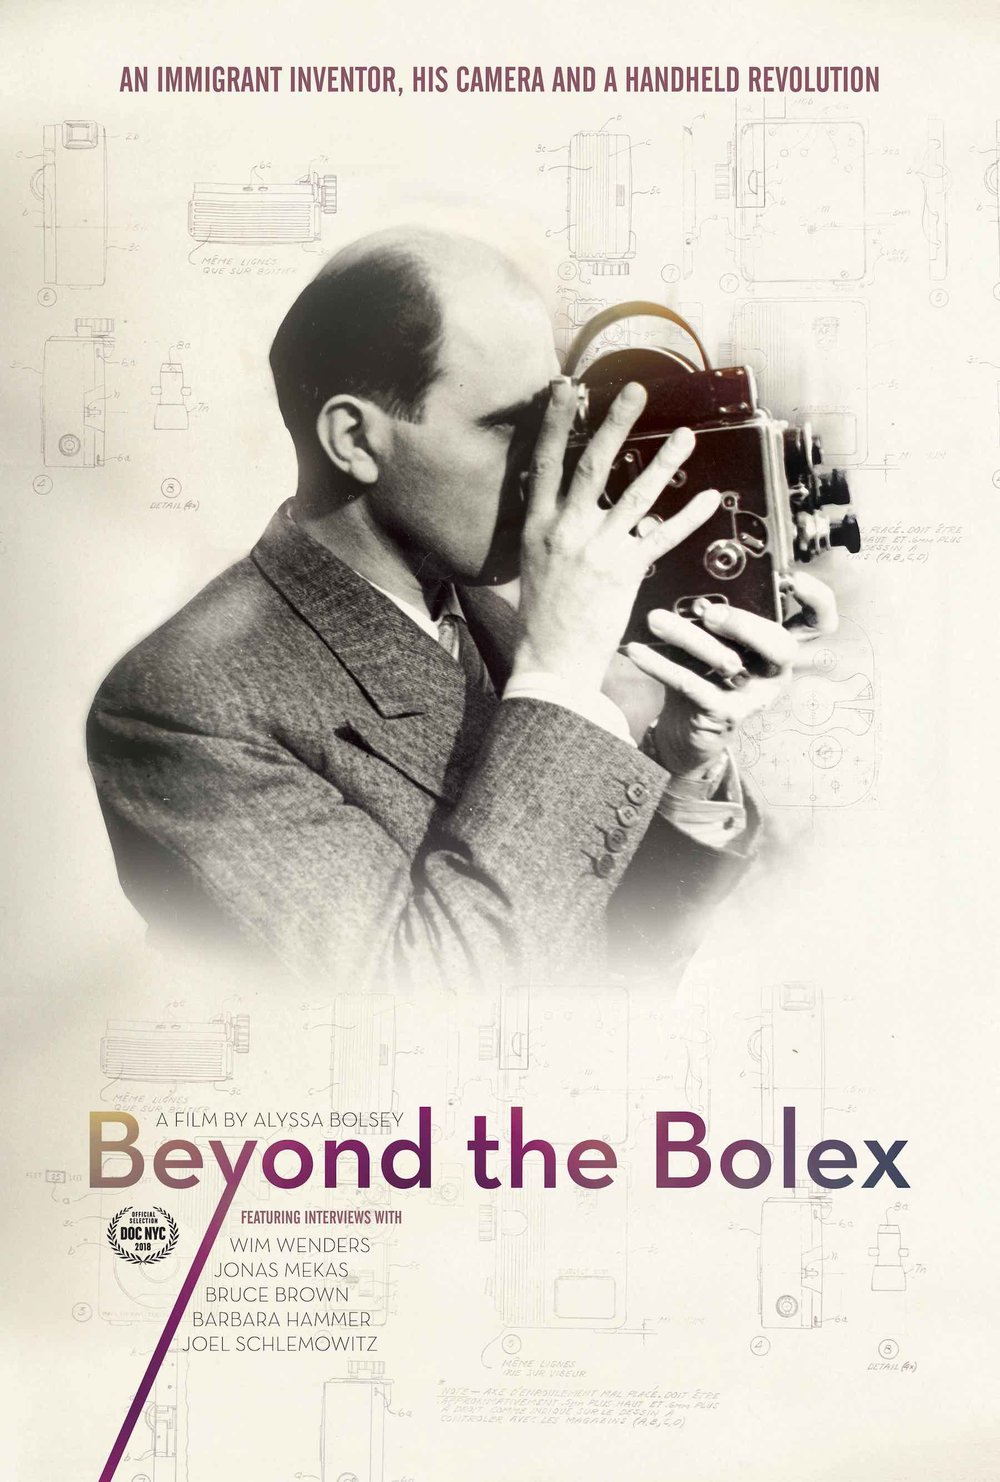 "Beyond the Bolex - 2018, USA/Switzerland, 91 min, in EnglishIn the 1920s immigrant inventor Jacques Bolsey aimed to disrupt the early film industry with a motion picture camera for the masses: the iconic Bolex. Over 90 years later, filmmaker Alyssa Bolsey pieces together the fragments of a forgotten family archive to reveal the epic story of her great-grandfather in ""Beyond the Bolex."" Interviewing family members and renowned filmmakers, Alyssa travels to Switzerland, and delves into Jacques' personal diary, film reels and collected images in order to understand the man and his impact on generations of filmmakers."